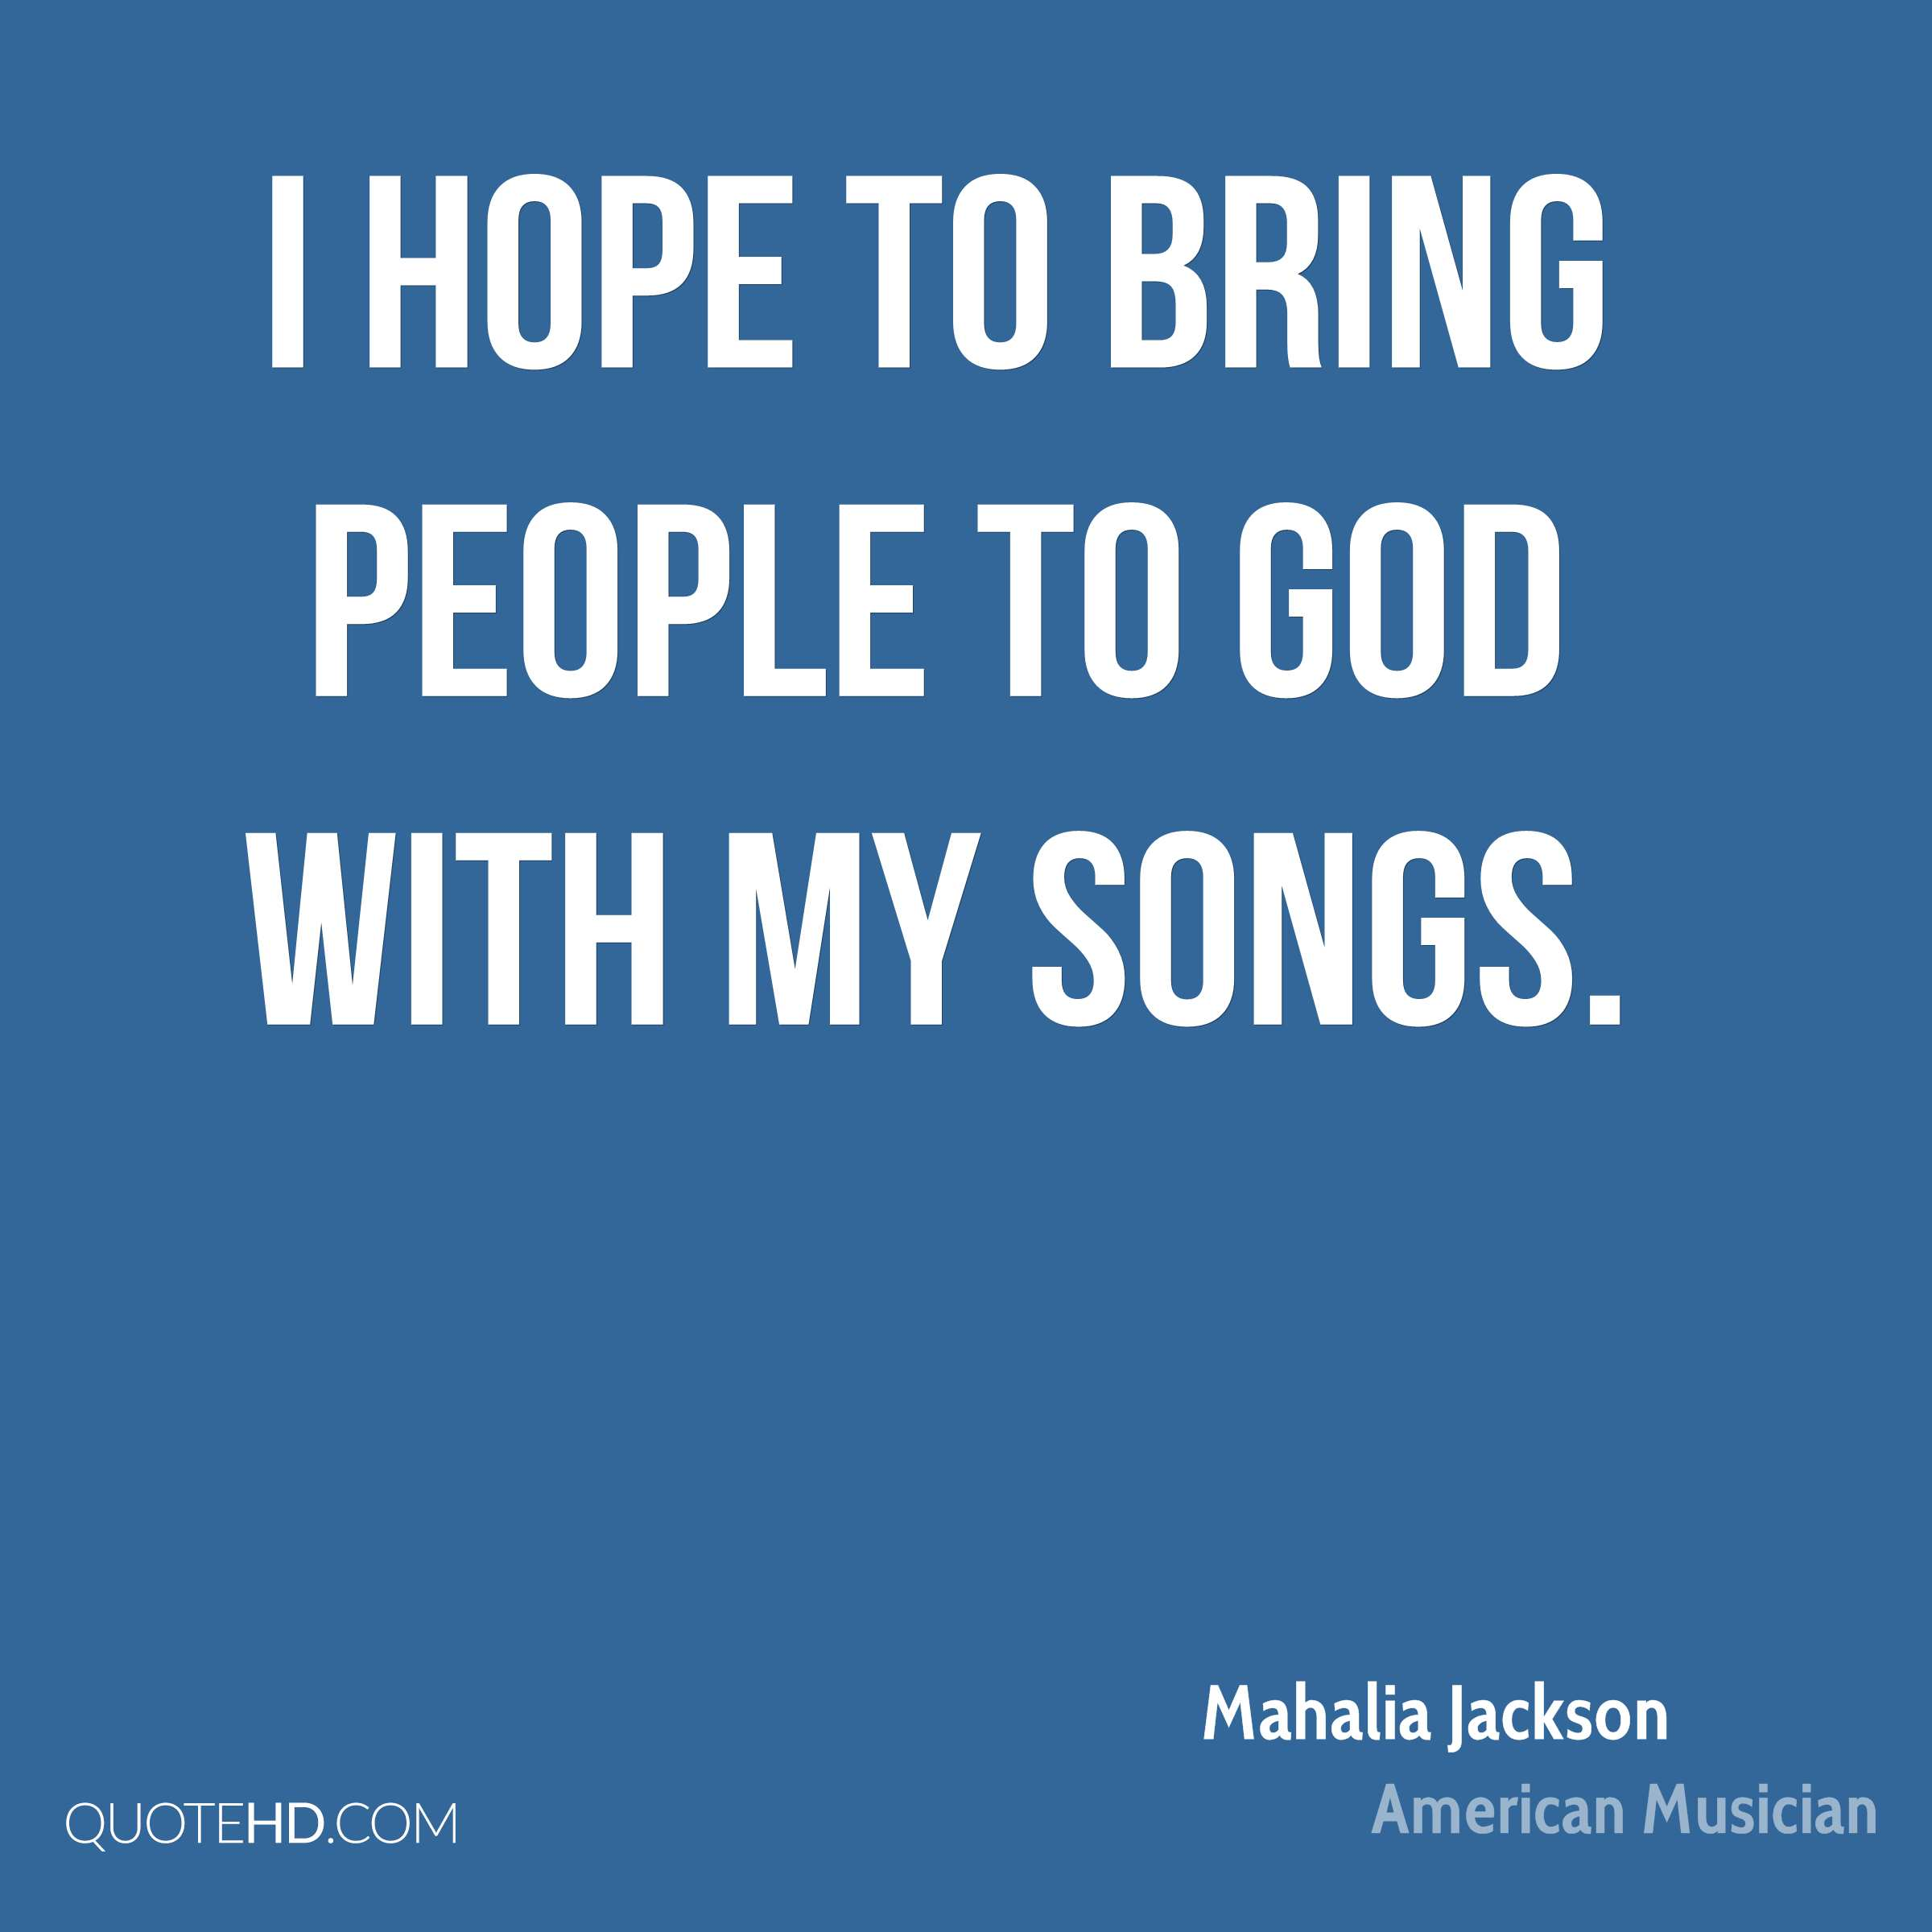 I hope to bring people to God with my songs.